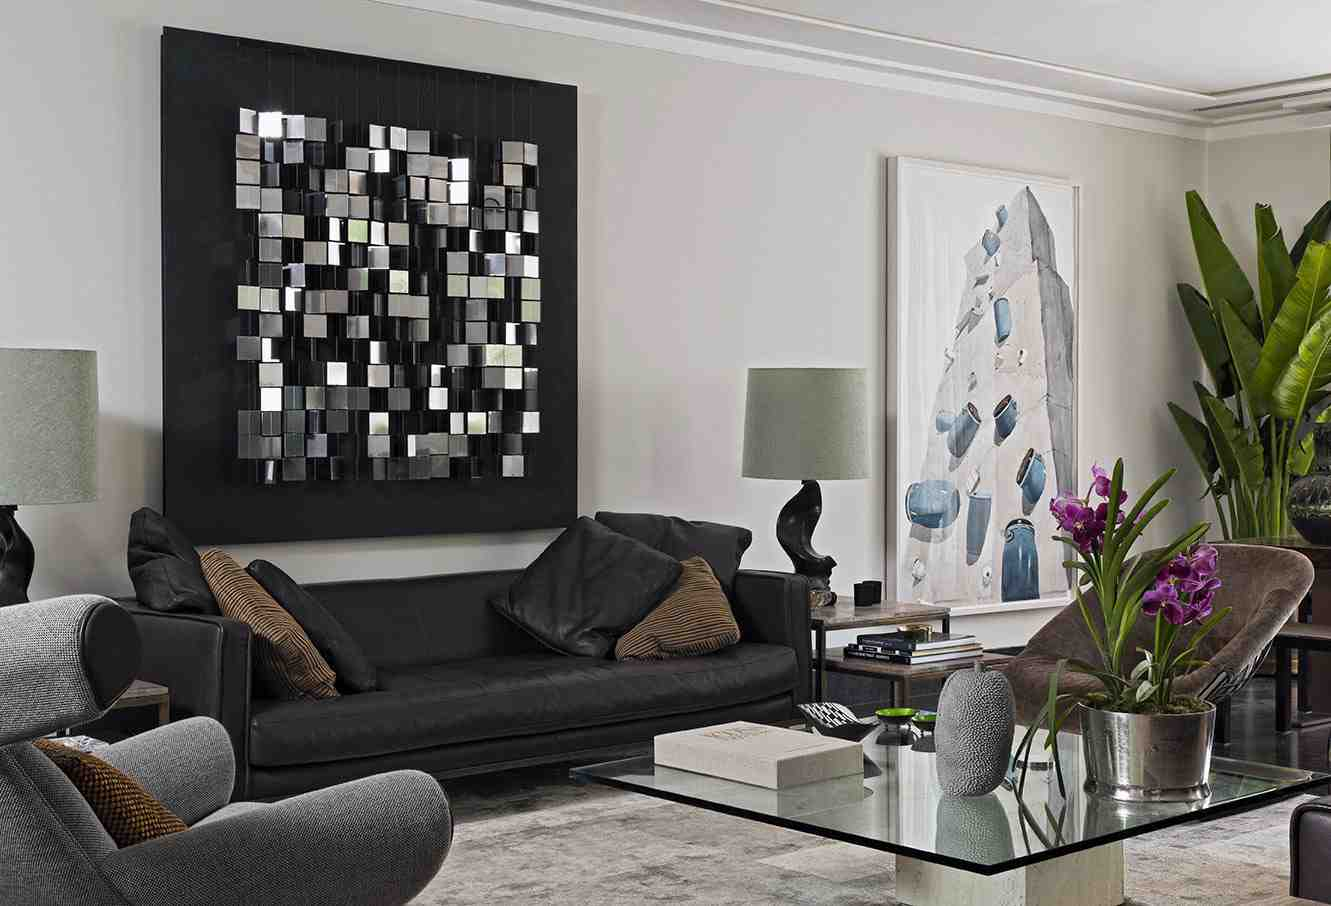 Living room wall decor 5 options decor ideasdecor ideas - Apartment wall decorating ideas ...